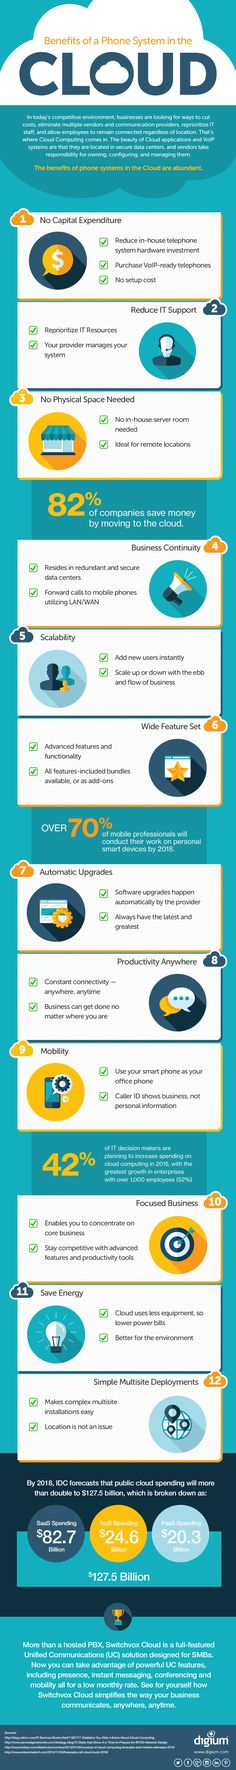 Benefits of a Phone System in the Cloud [Infographic]